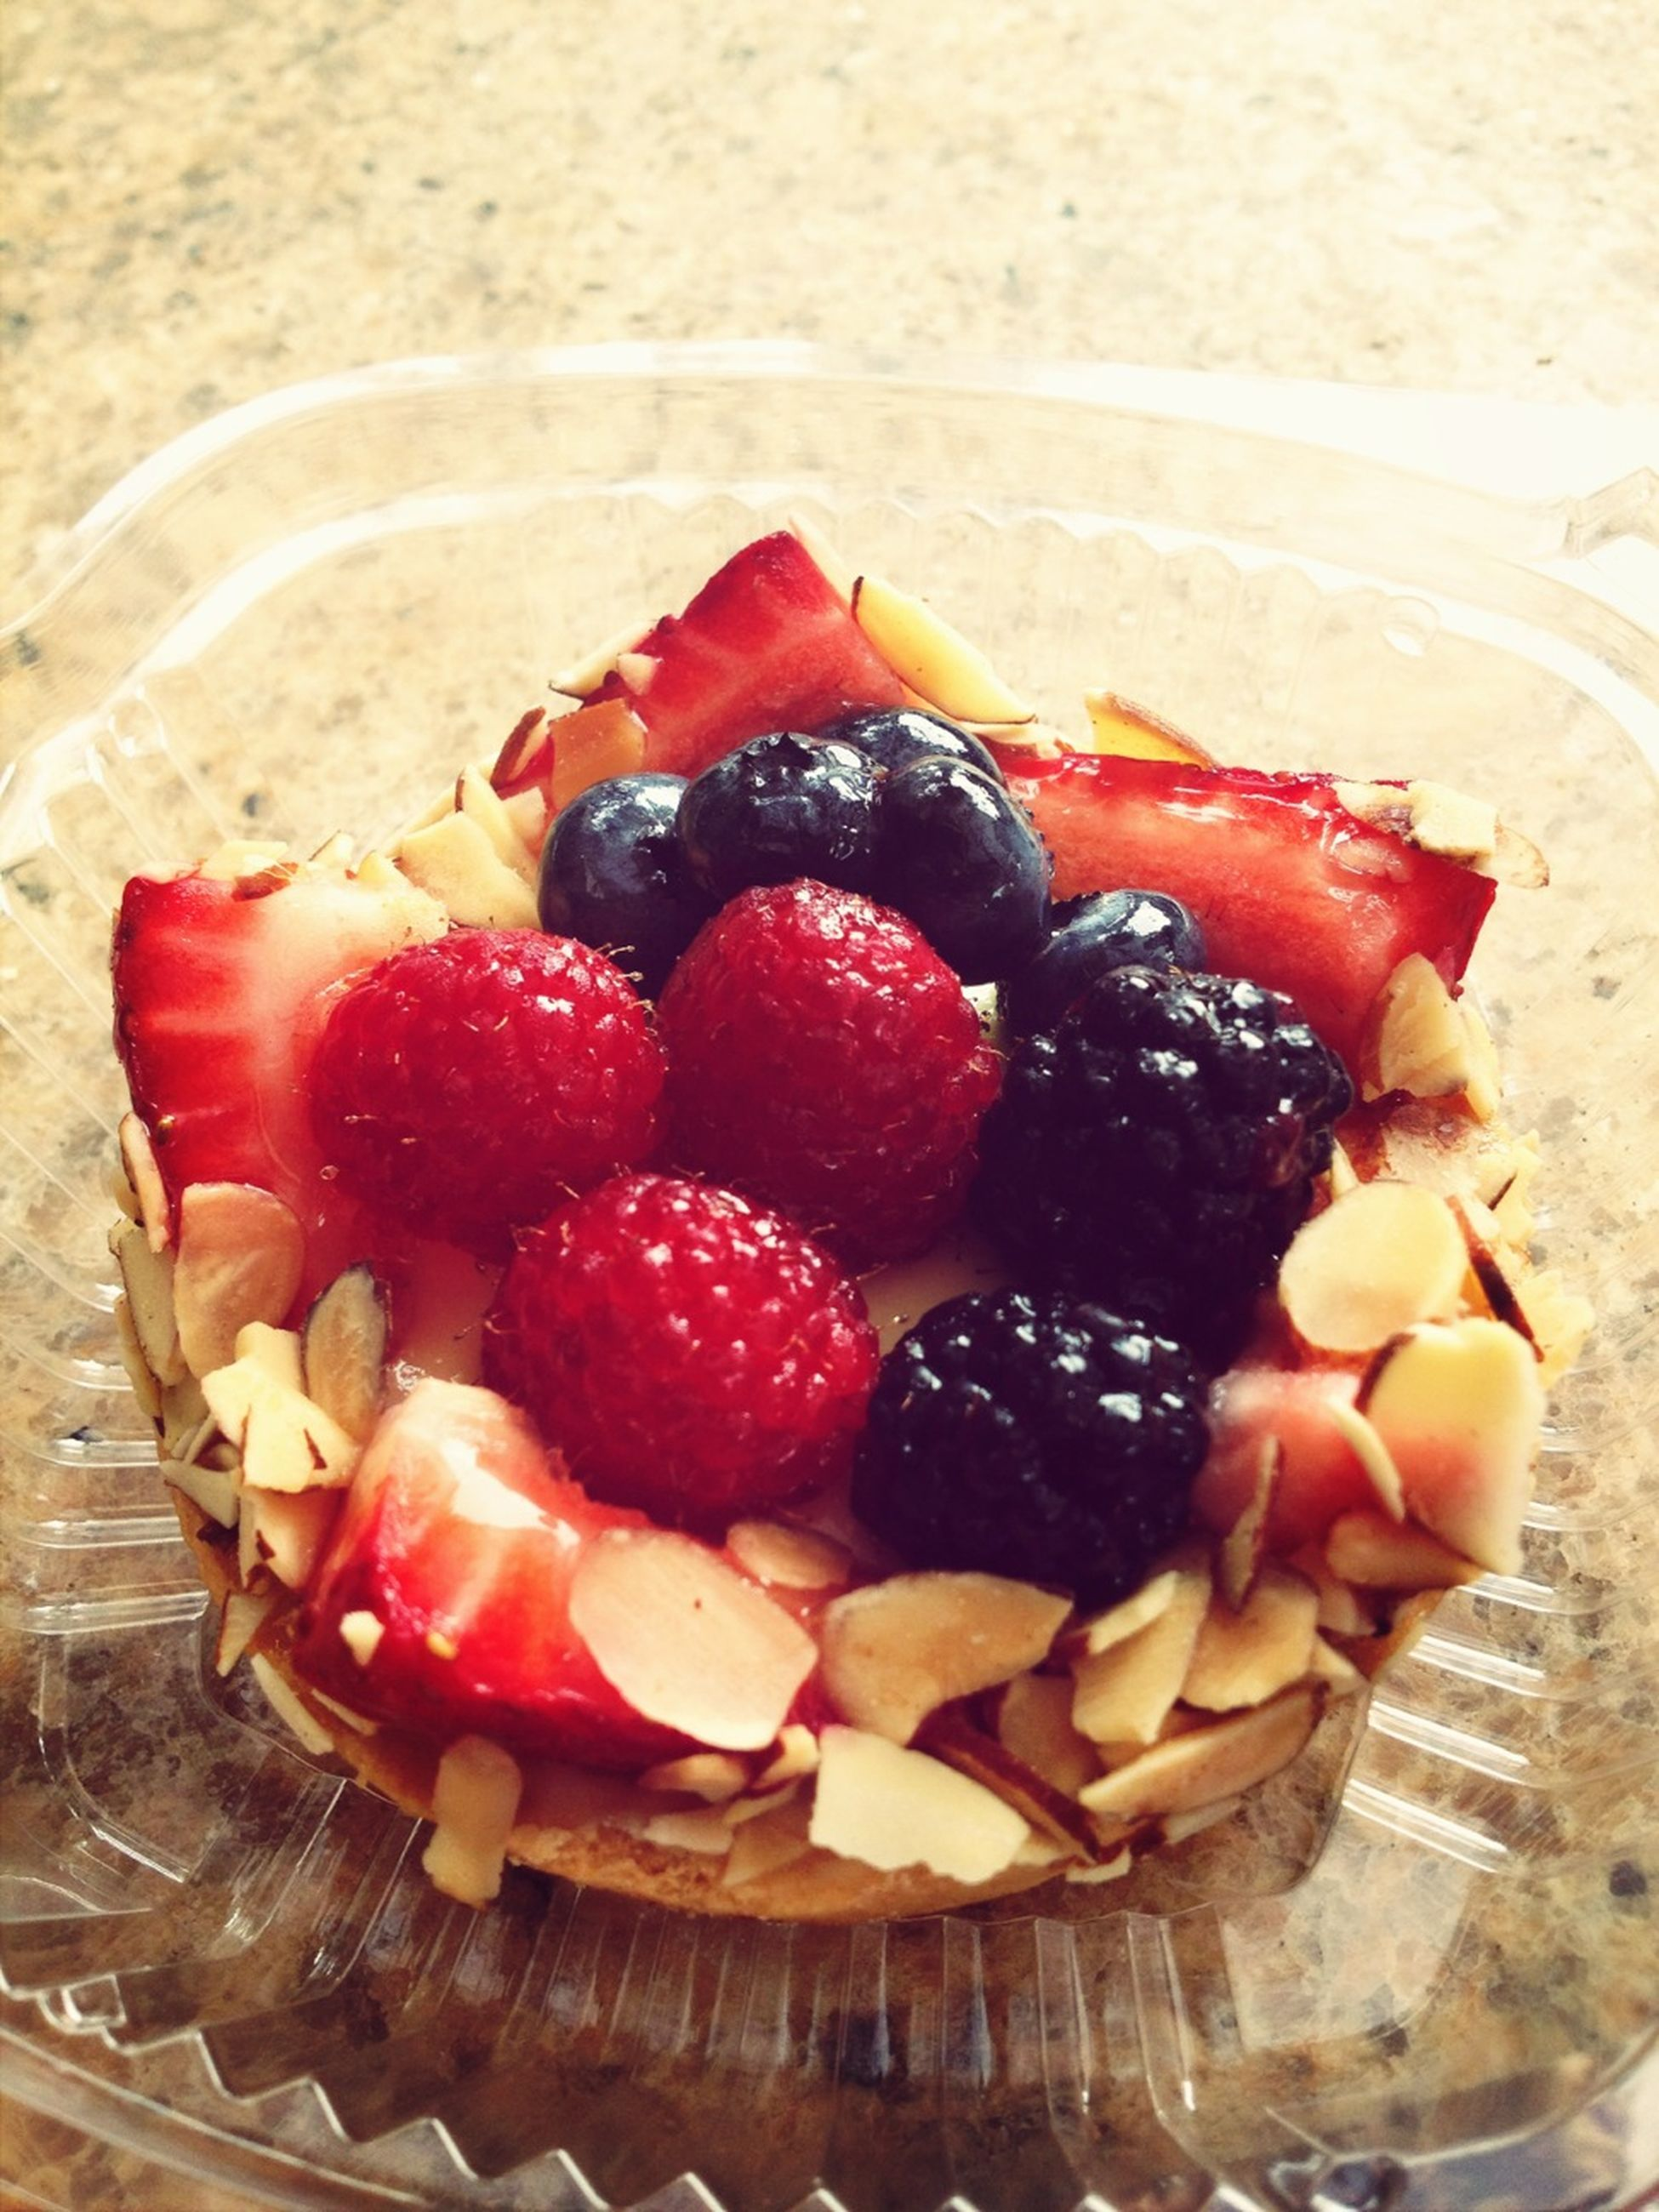 food and drink, food, freshness, fruit, indoors, strawberry, ready-to-eat, healthy eating, still life, sweet food, indulgence, dessert, raspberry, close-up, plate, temptation, berry fruit, ripe, red, juicy